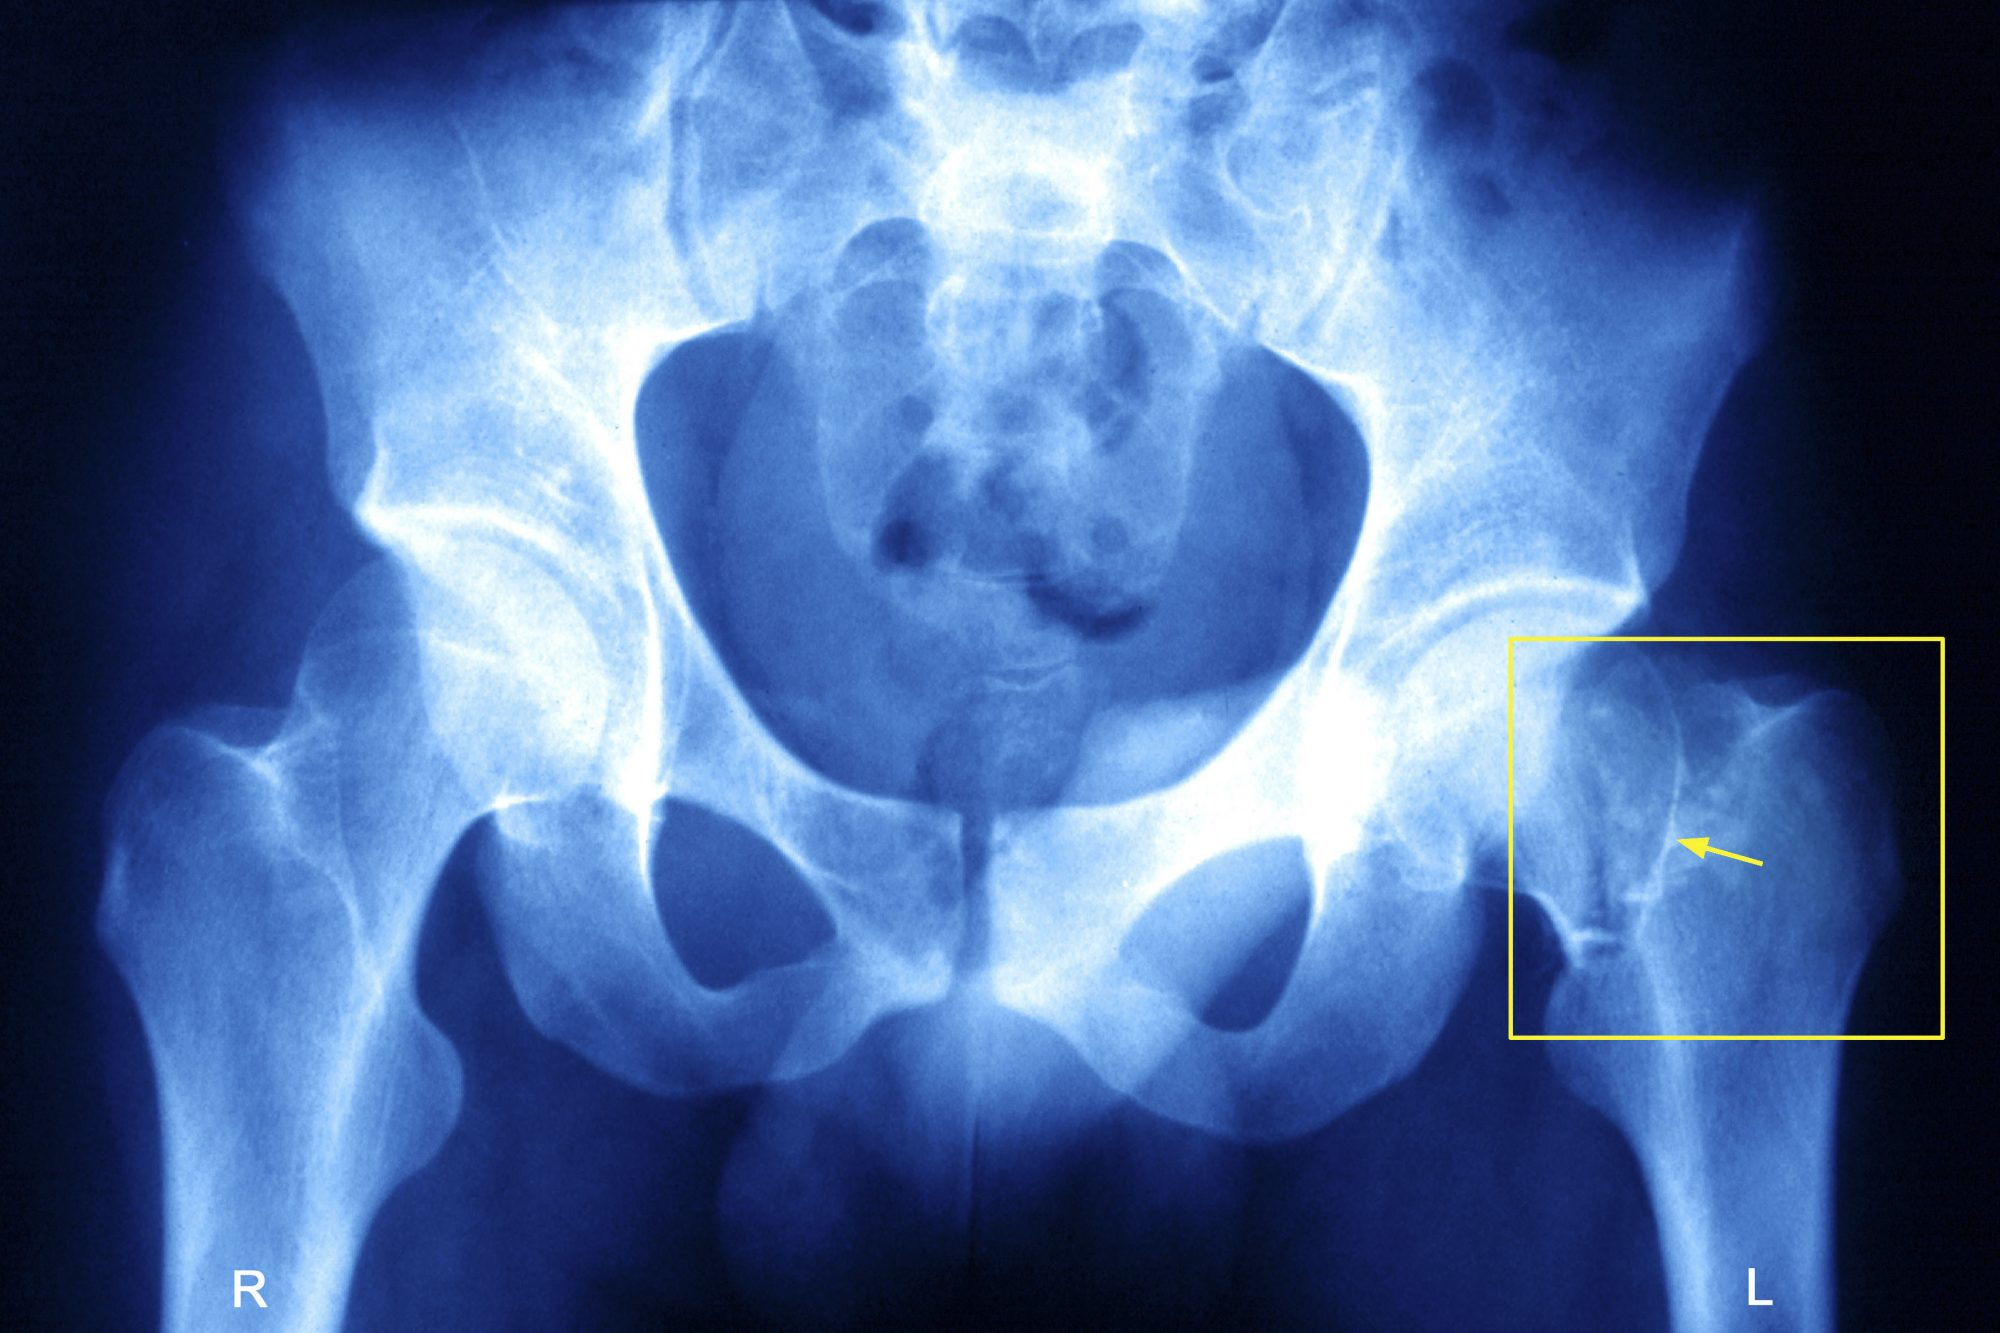 Fractured hip xray osteoporosis bone health